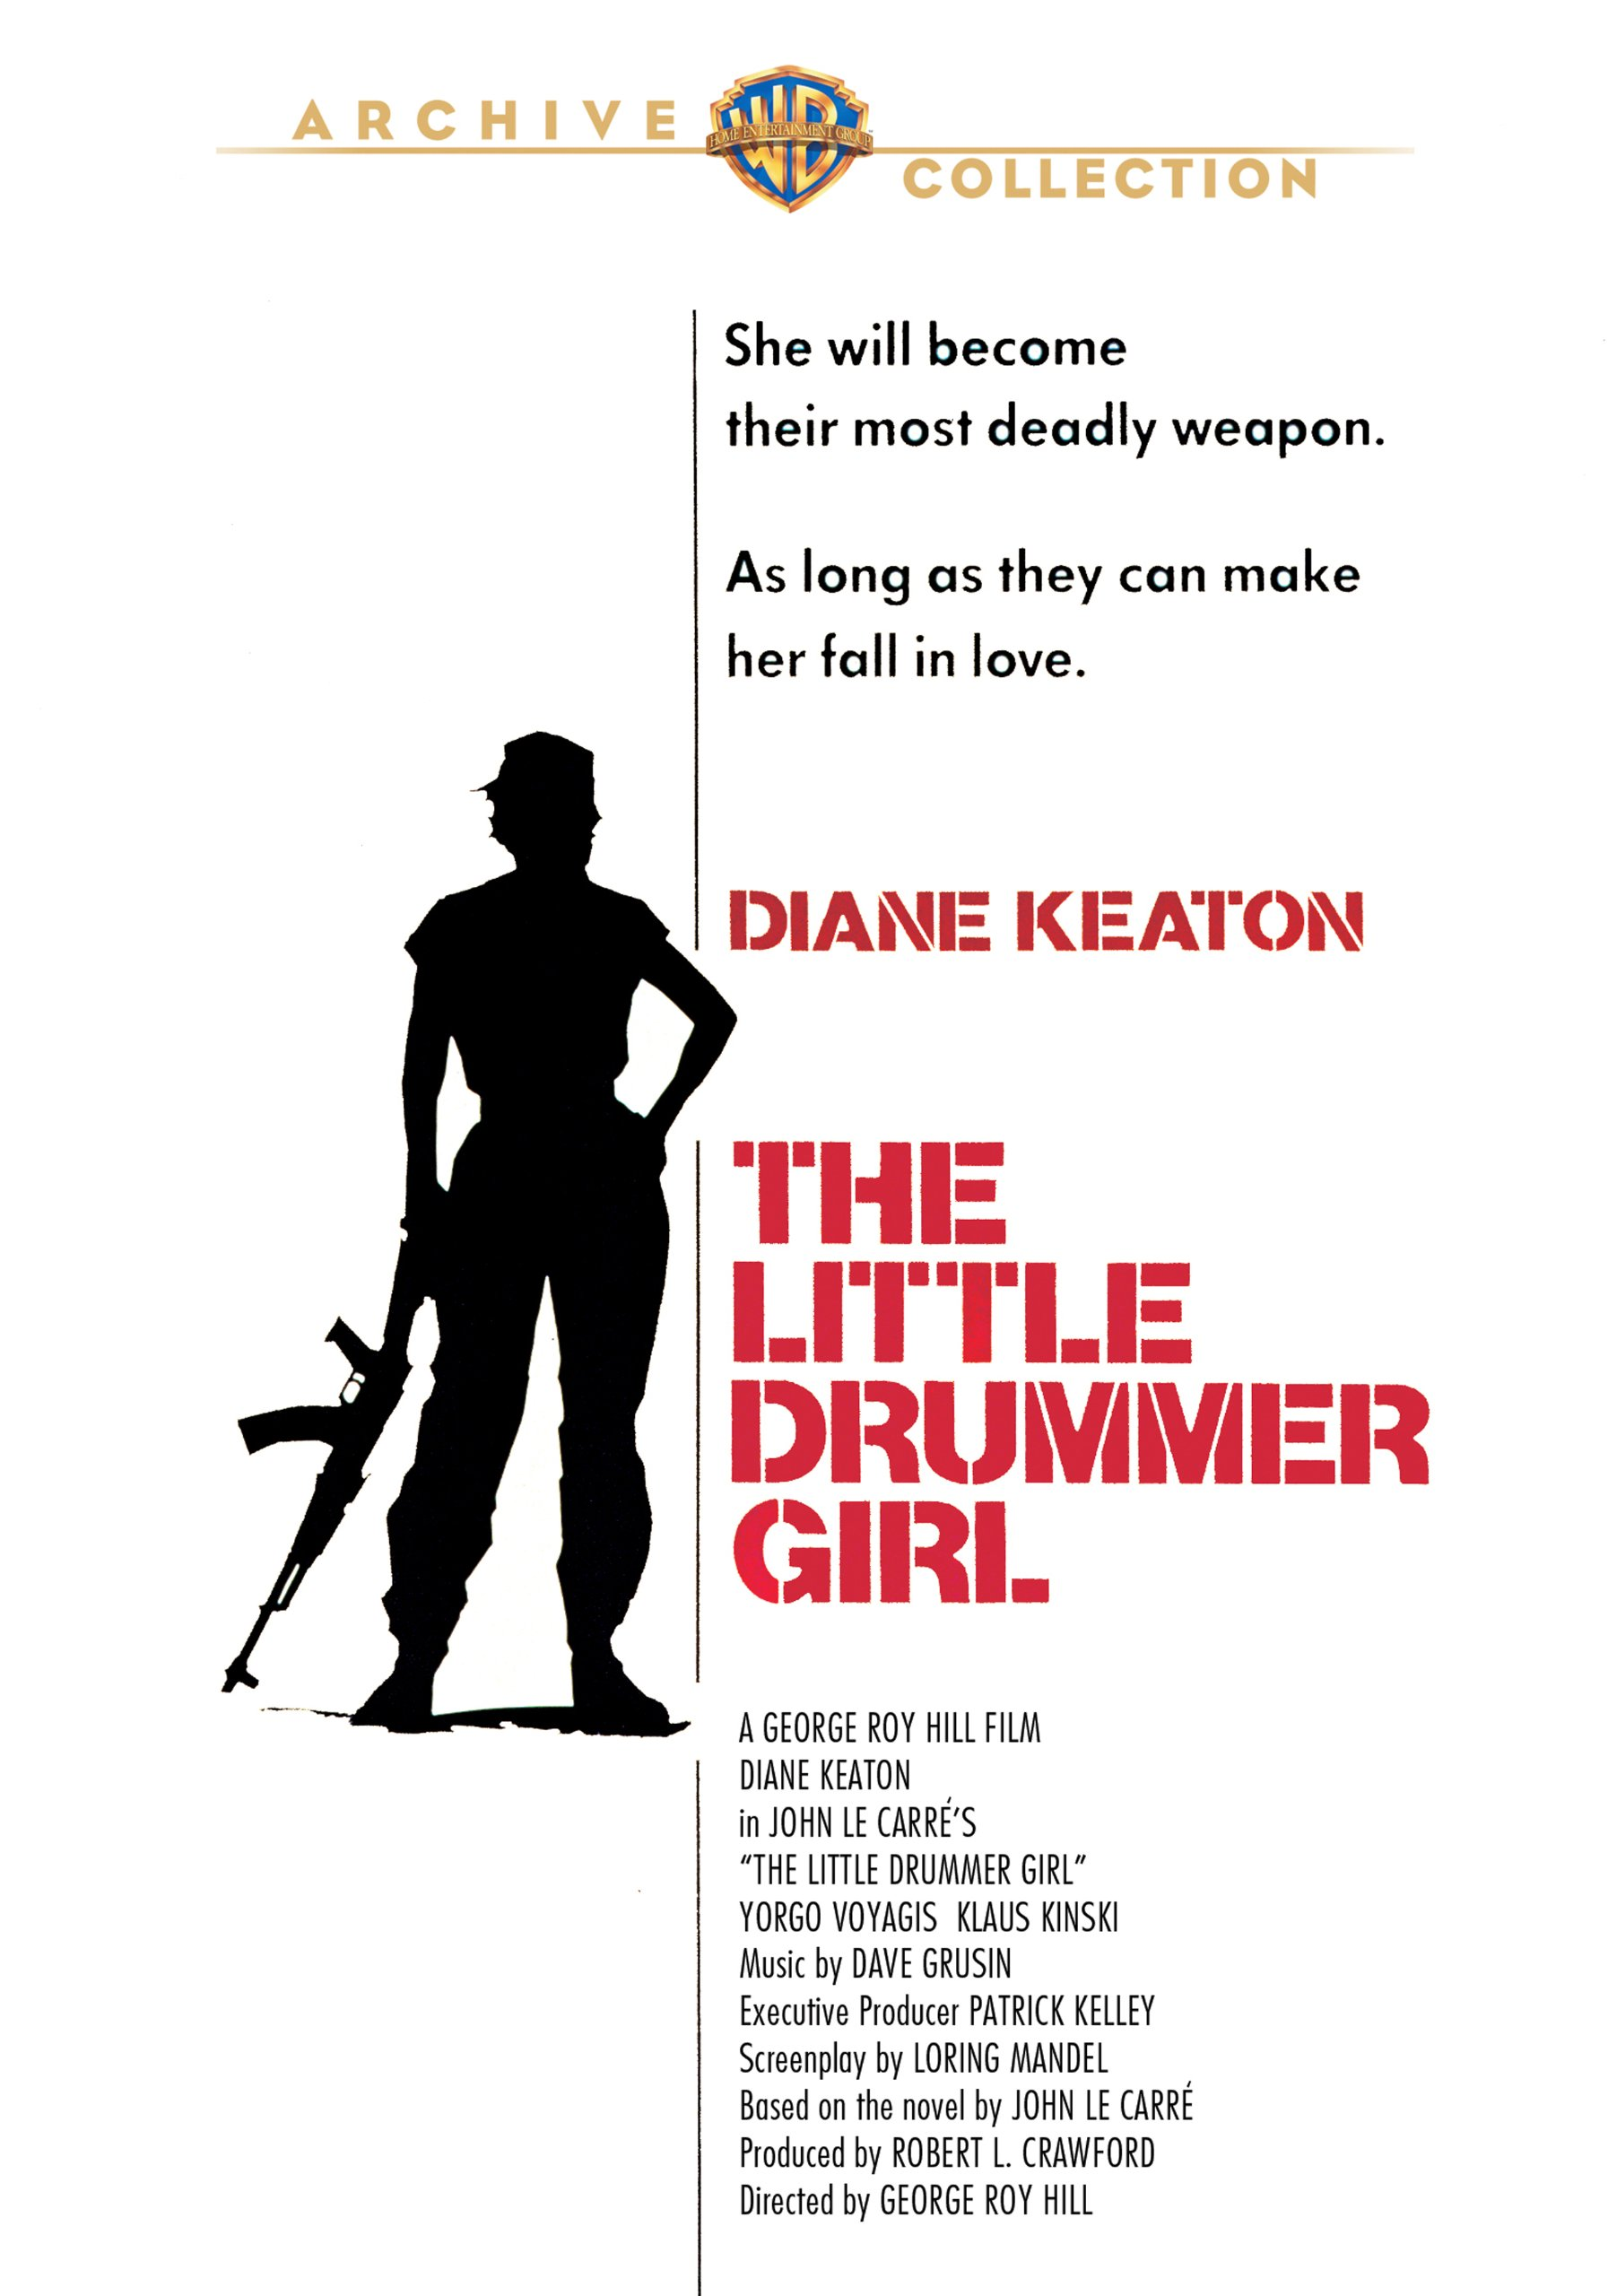 Amazon.com: The Little Drummer Girl: Diane Keaton, Yorgo Voyagis ...